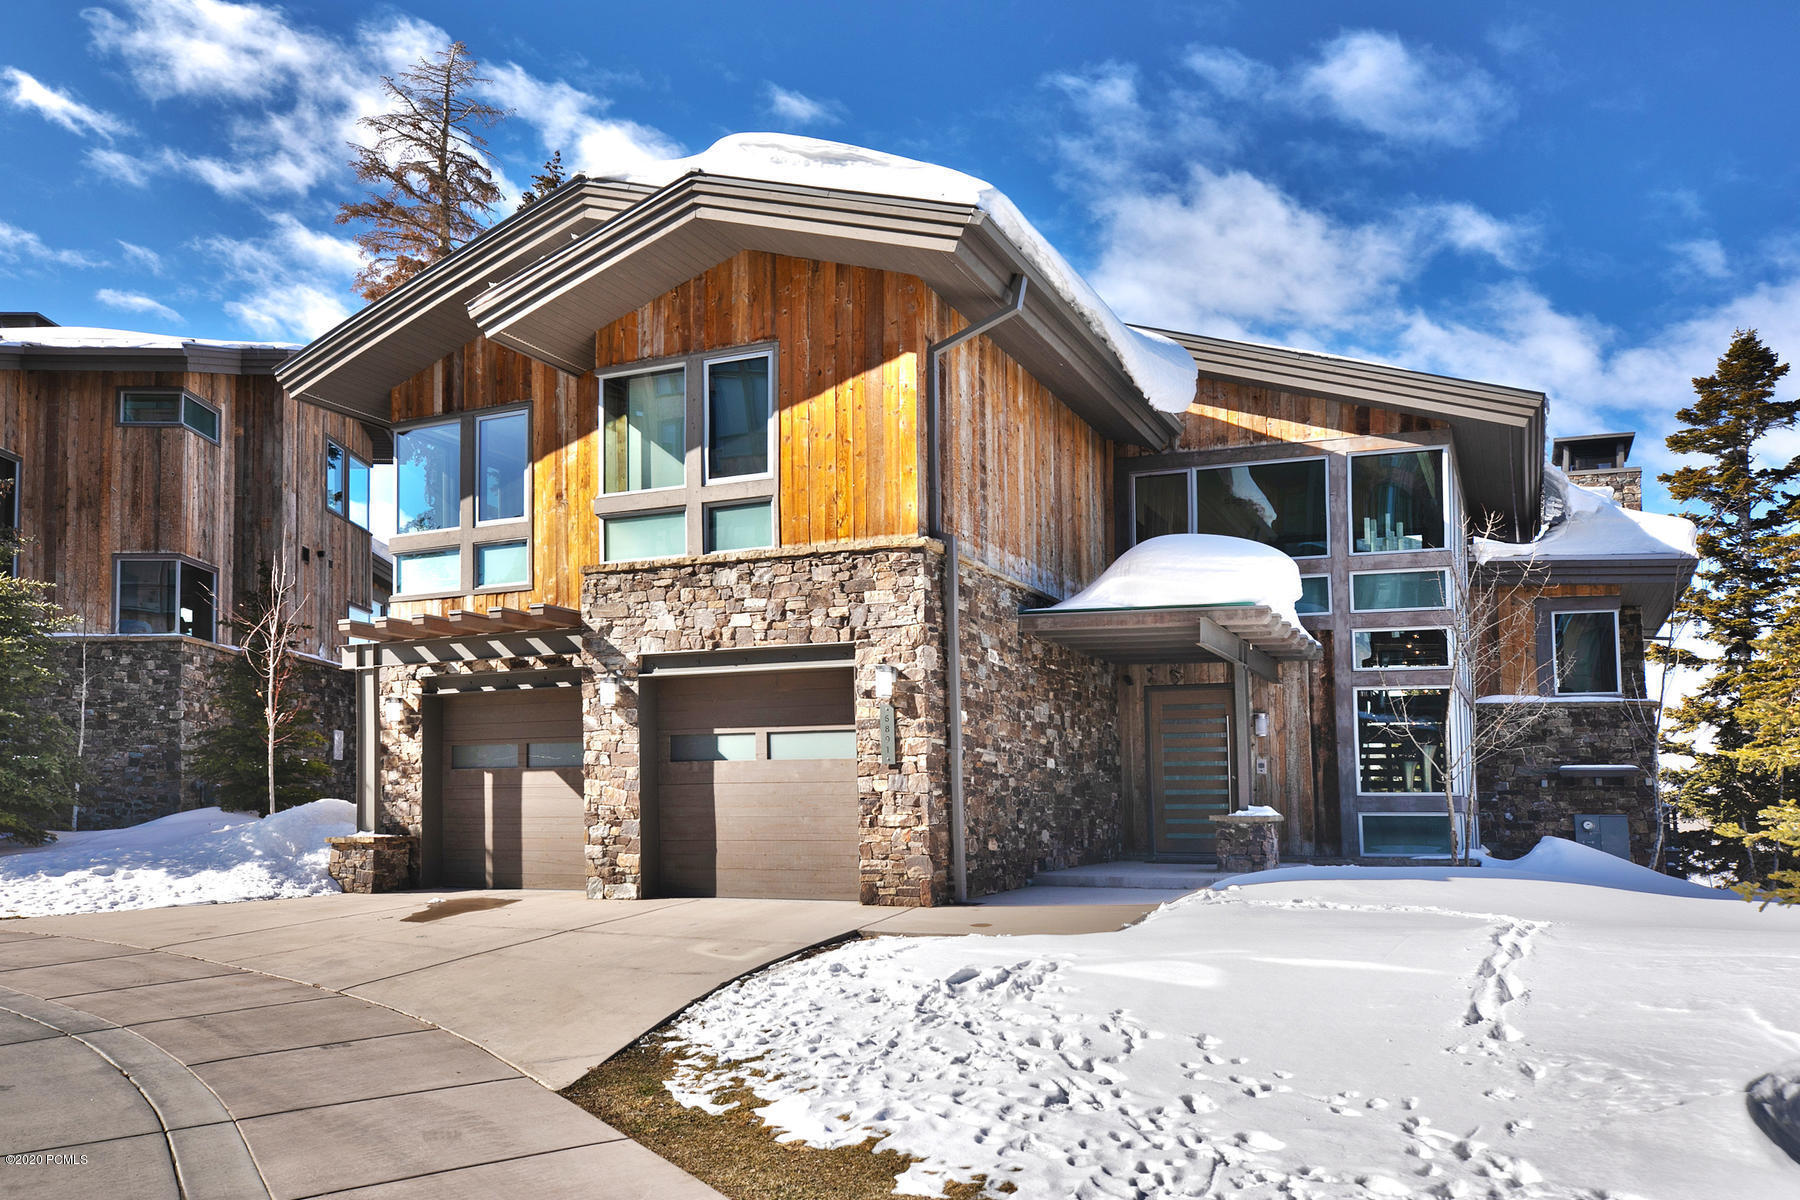 6891 Steins Circle, Park City, Utah 84060, 6 Bedrooms Bedrooms, ,8 BathroomsBathrooms,Single Family,For Sale,Steins,20190109112430415765000000